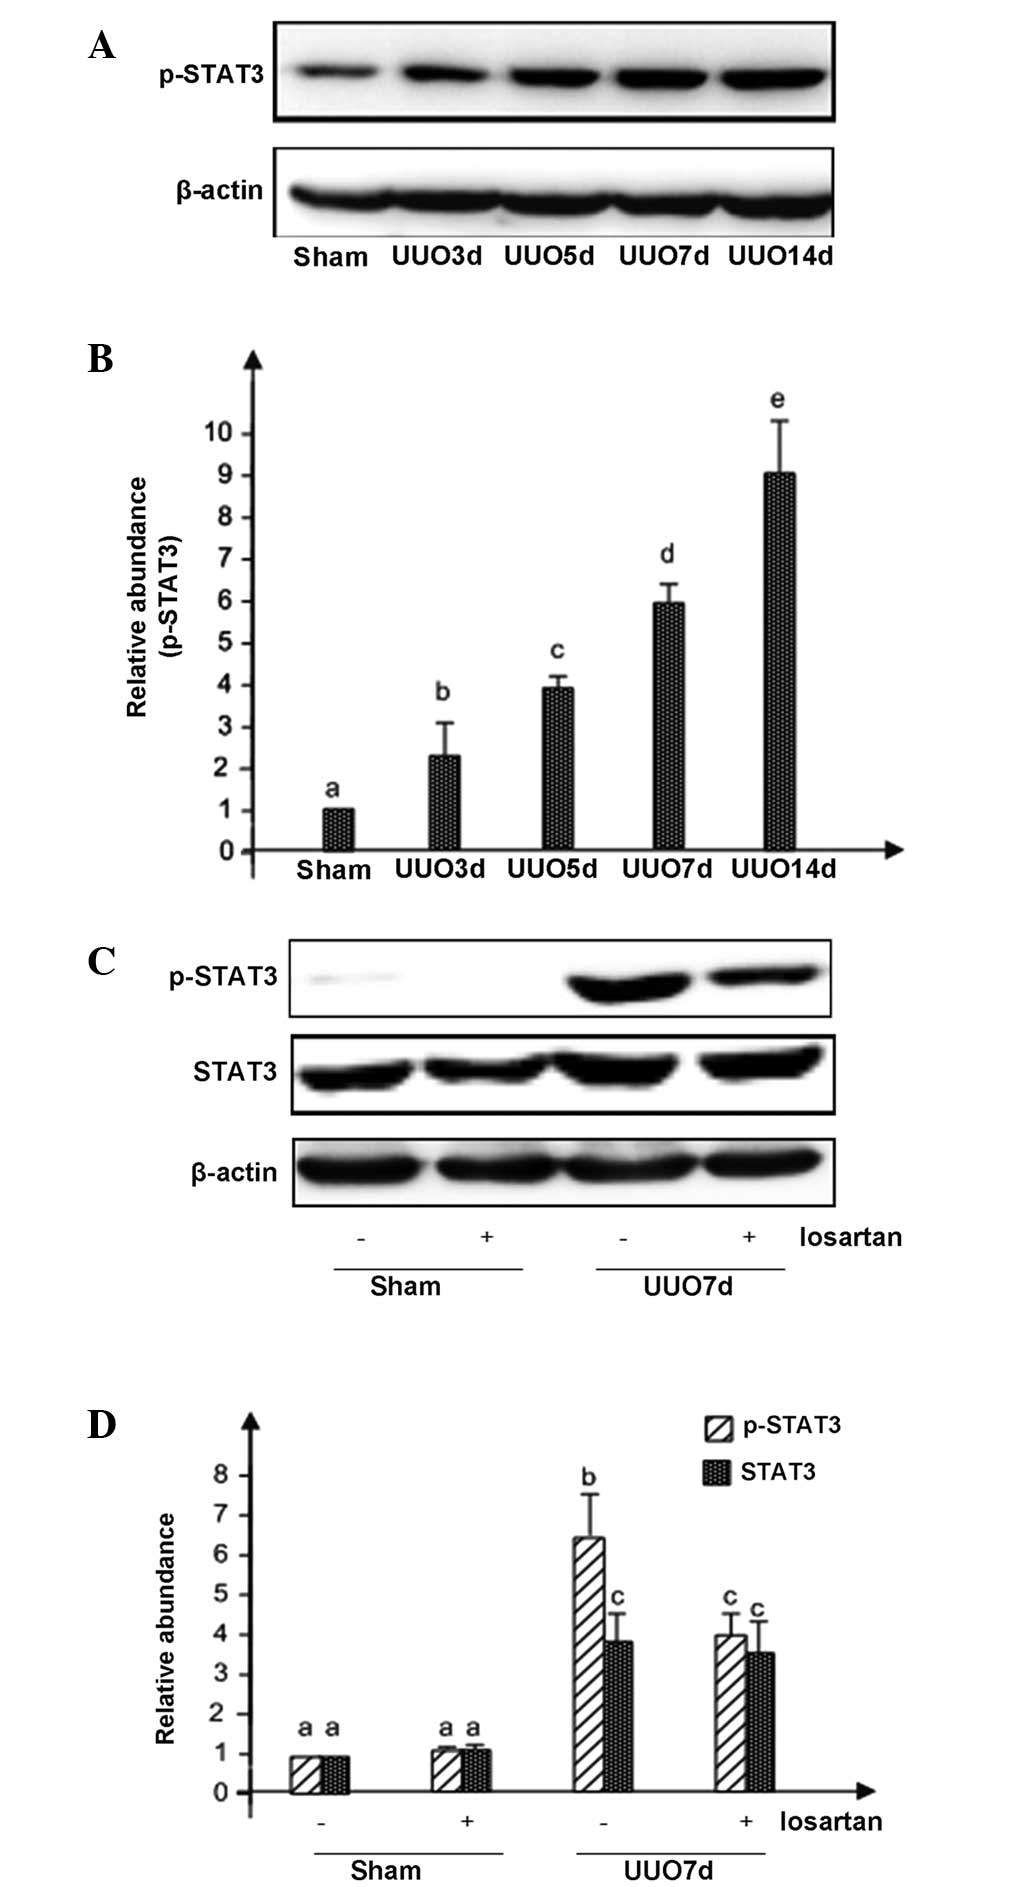 Losartan Attenuates Renal Interstitial Fibrosis And Tubular Cell Apoptosis In A Rat Model Of Obstructive Nephropathy